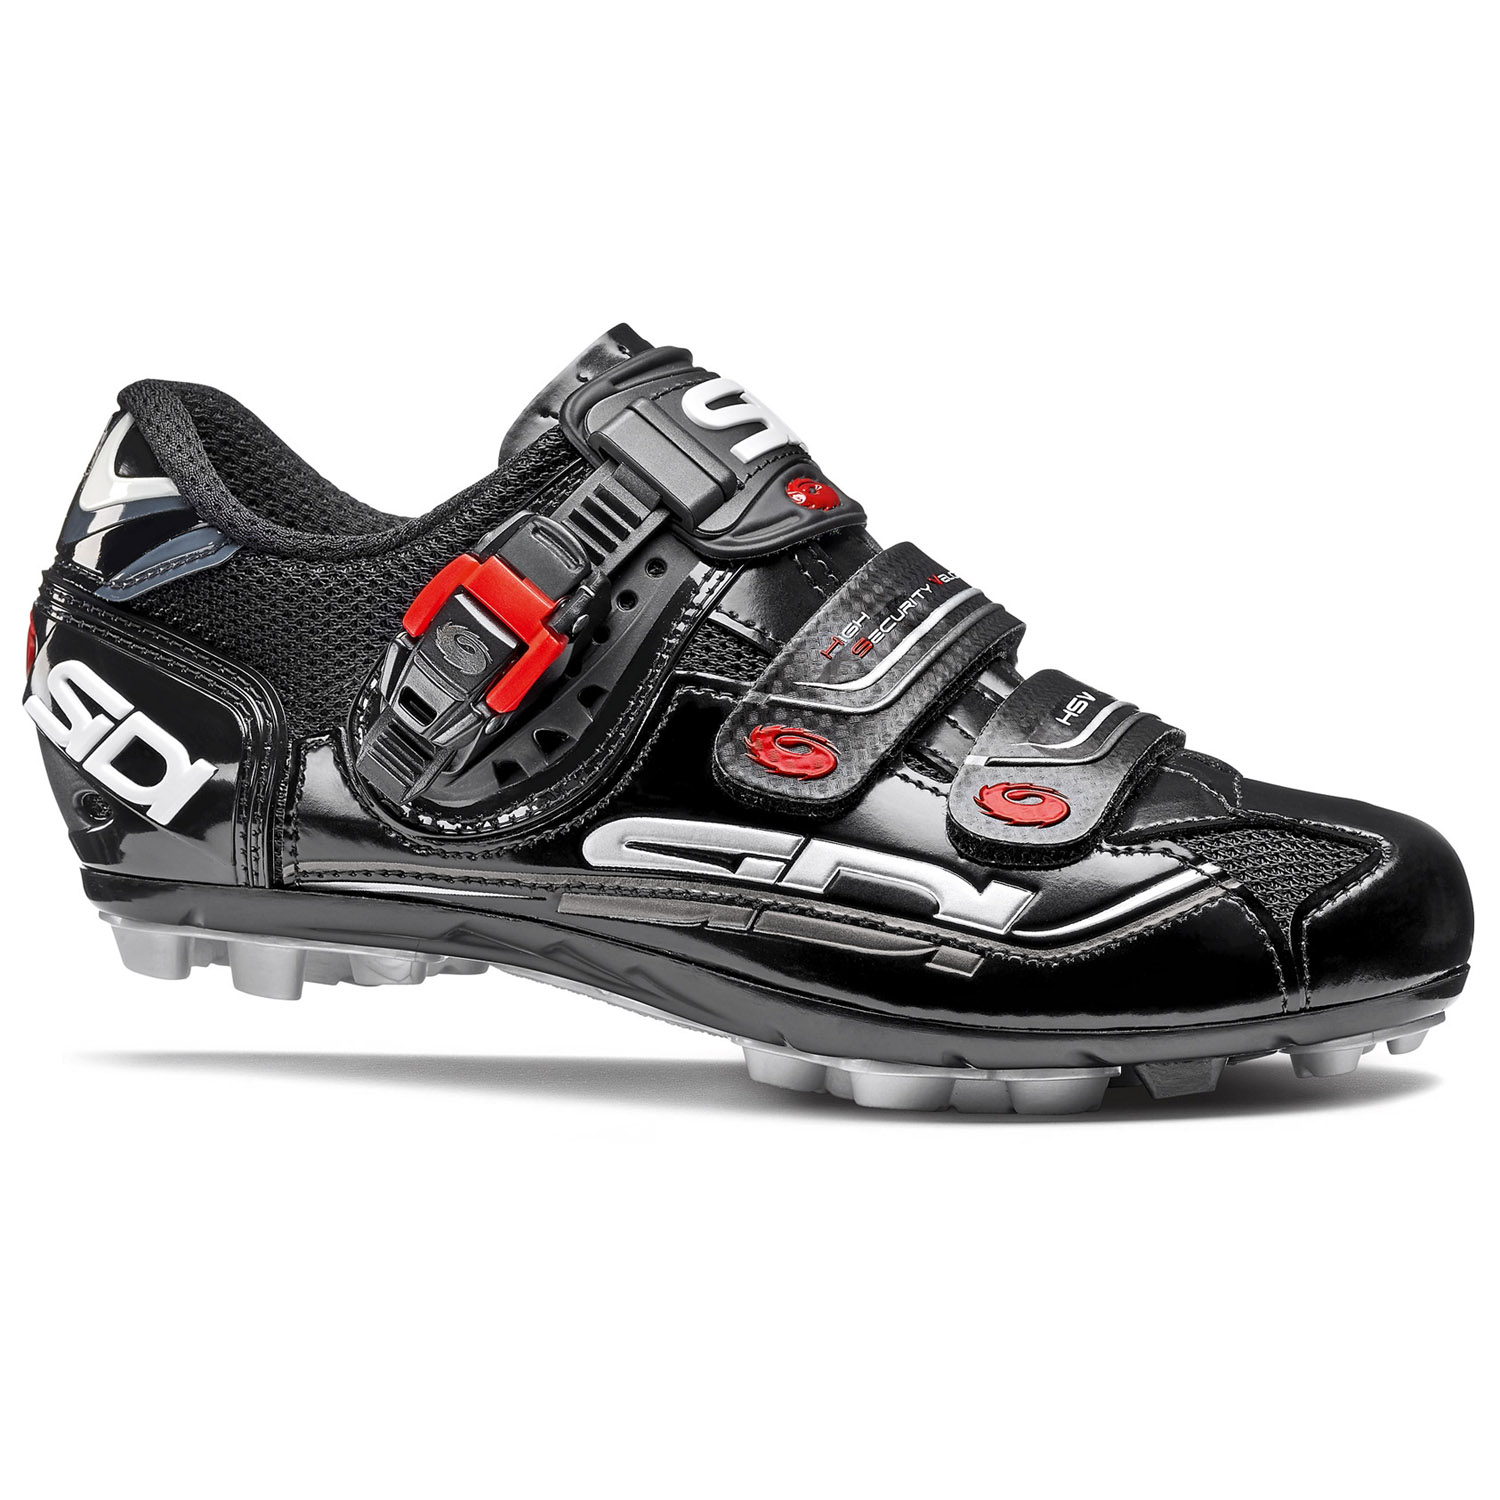 sidi eagle 7 mtb schuhe damen schwarz gr e 39 online. Black Bedroom Furniture Sets. Home Design Ideas